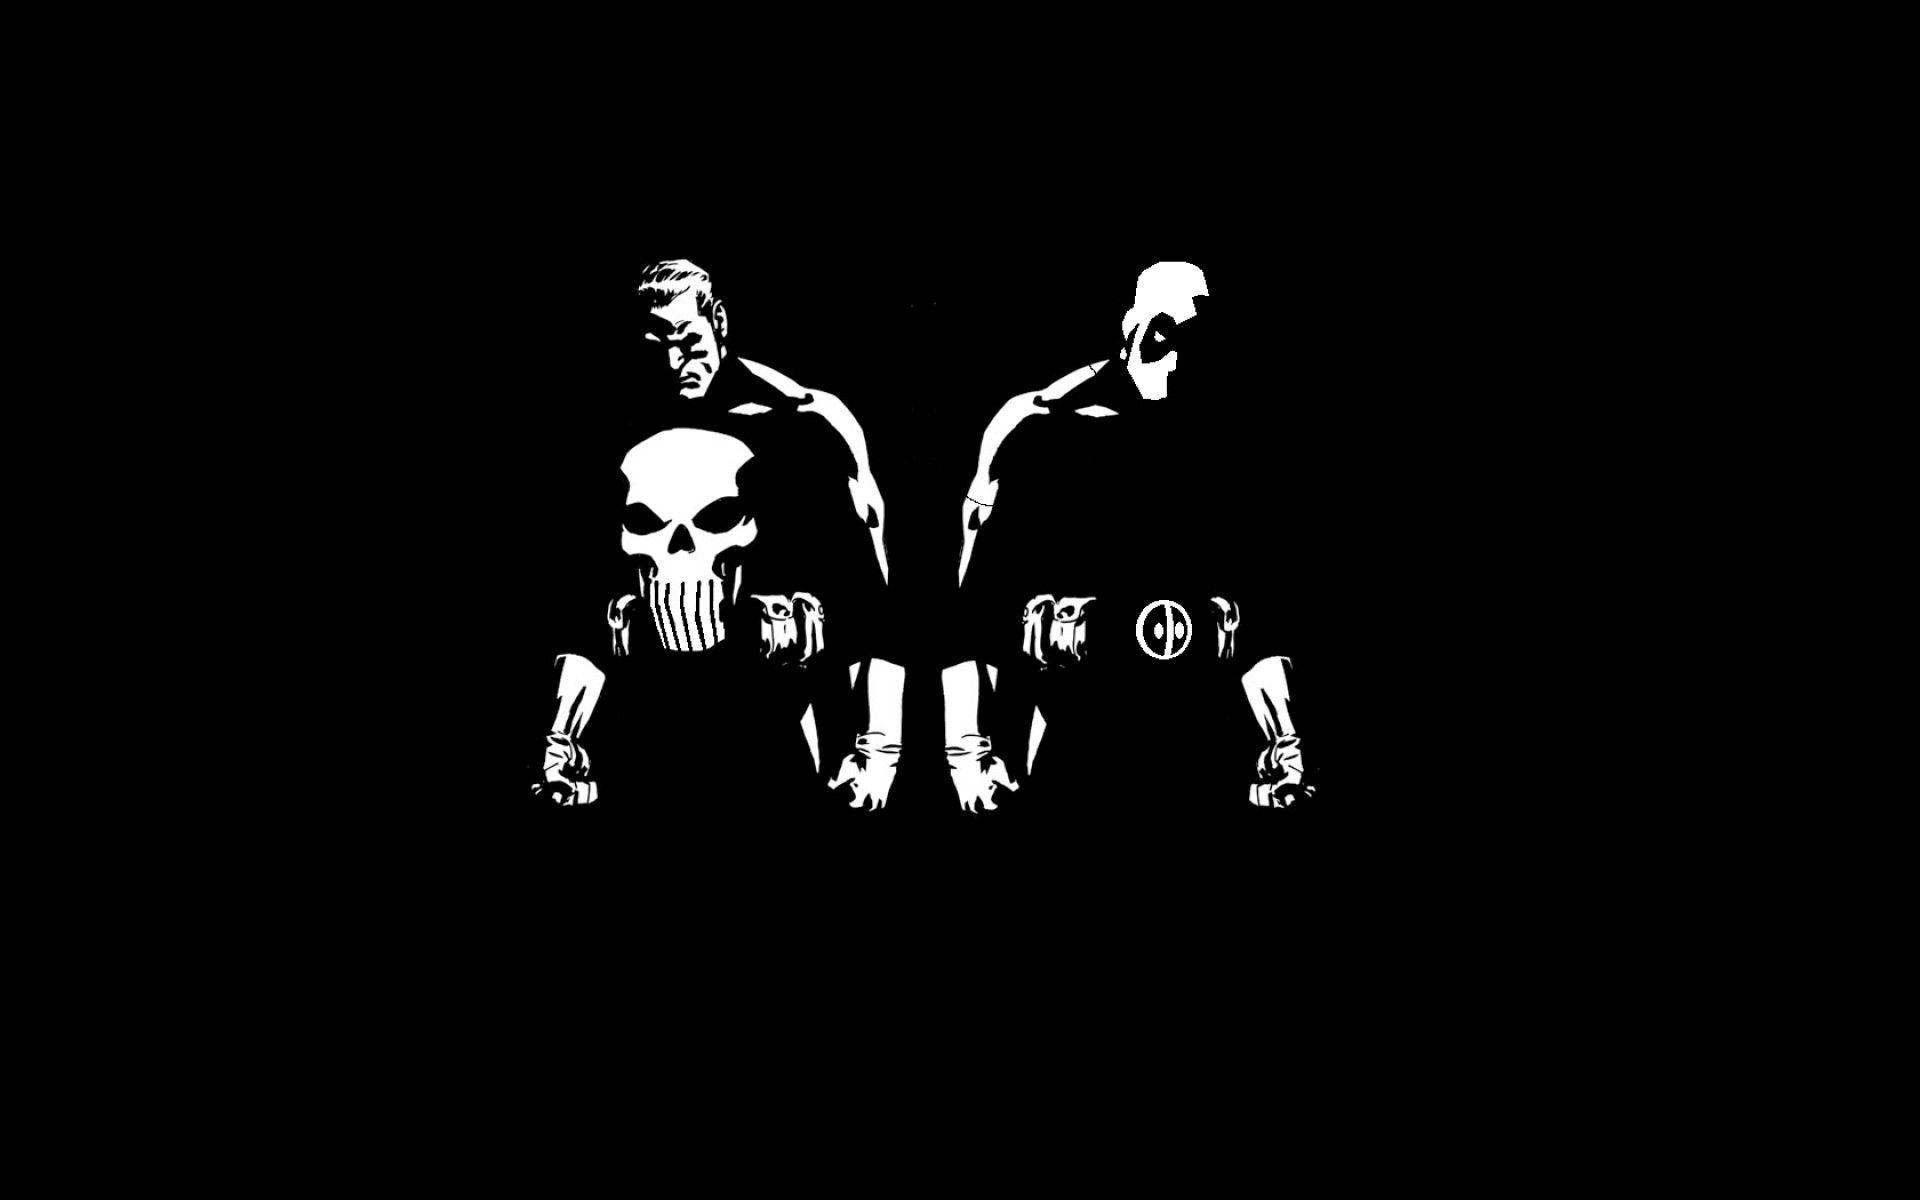 punisher logo wallpapers - photo #24